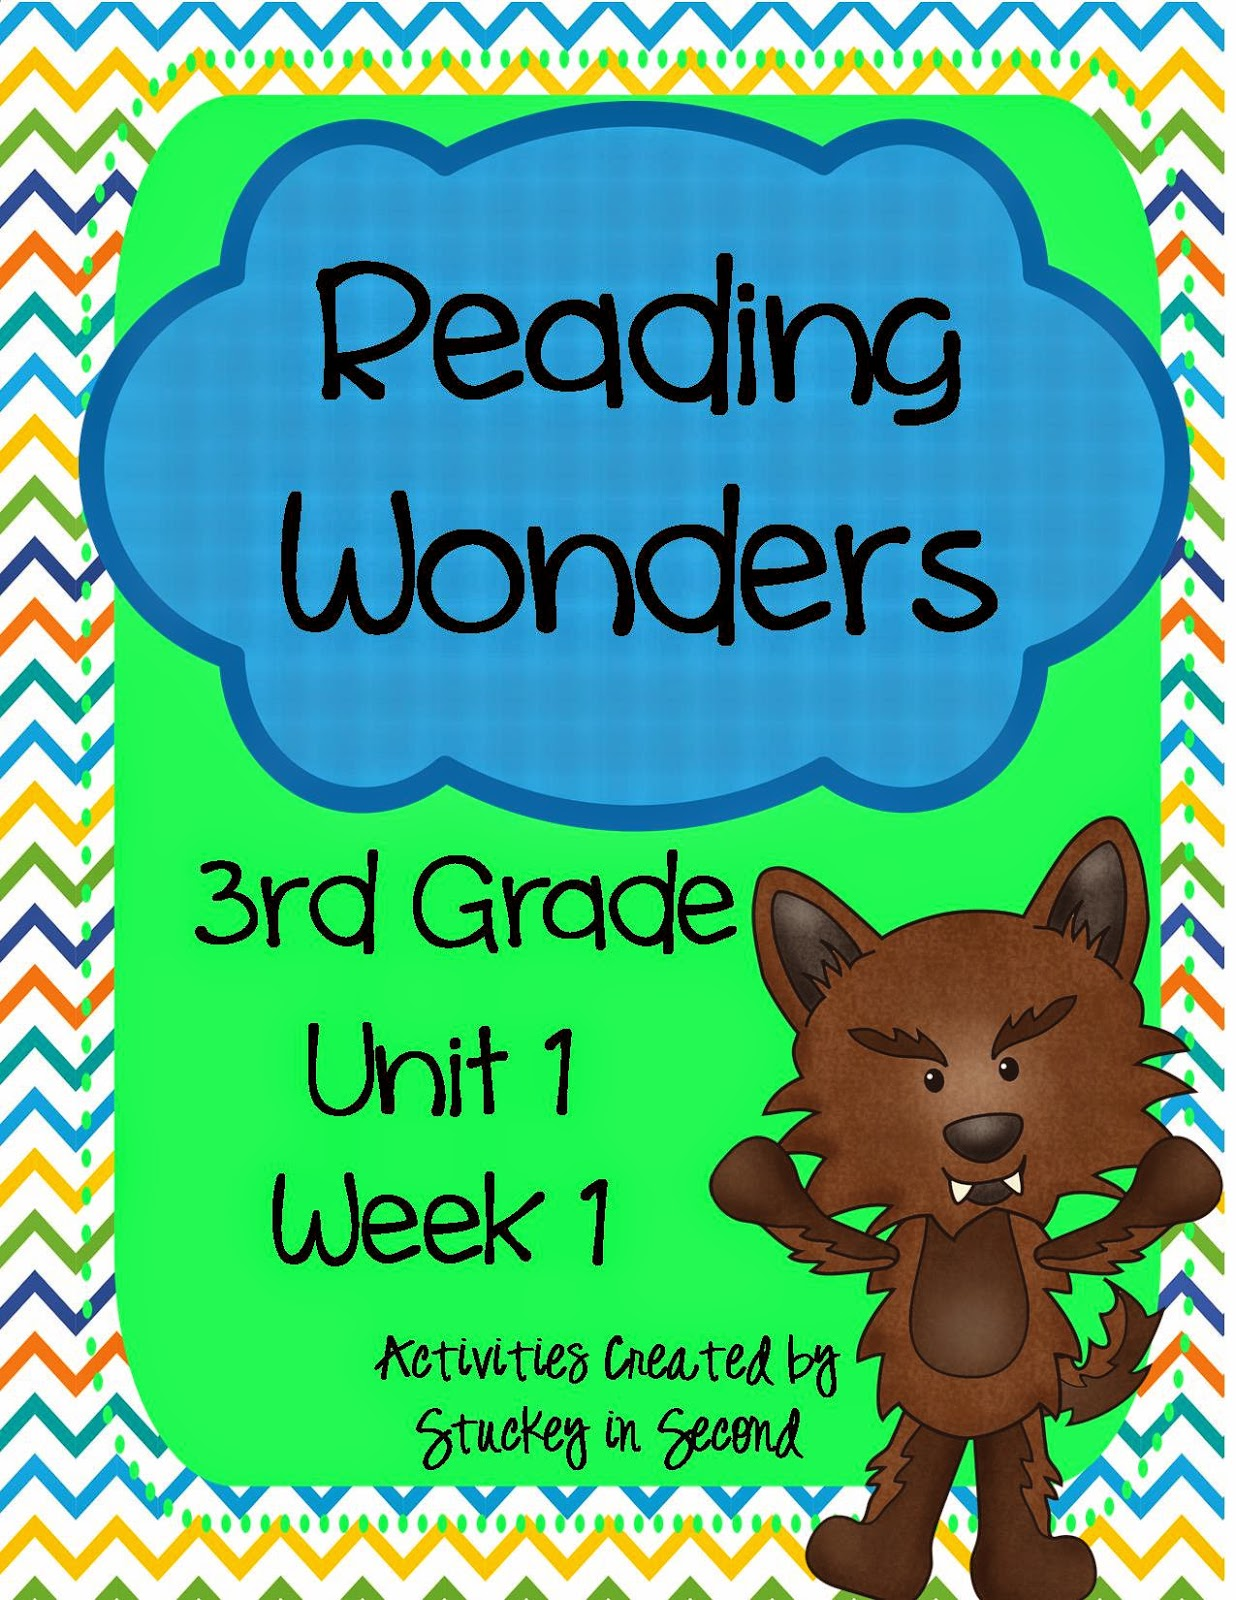 Stuckey In Second Reading Wonders My Thoughts After One Year